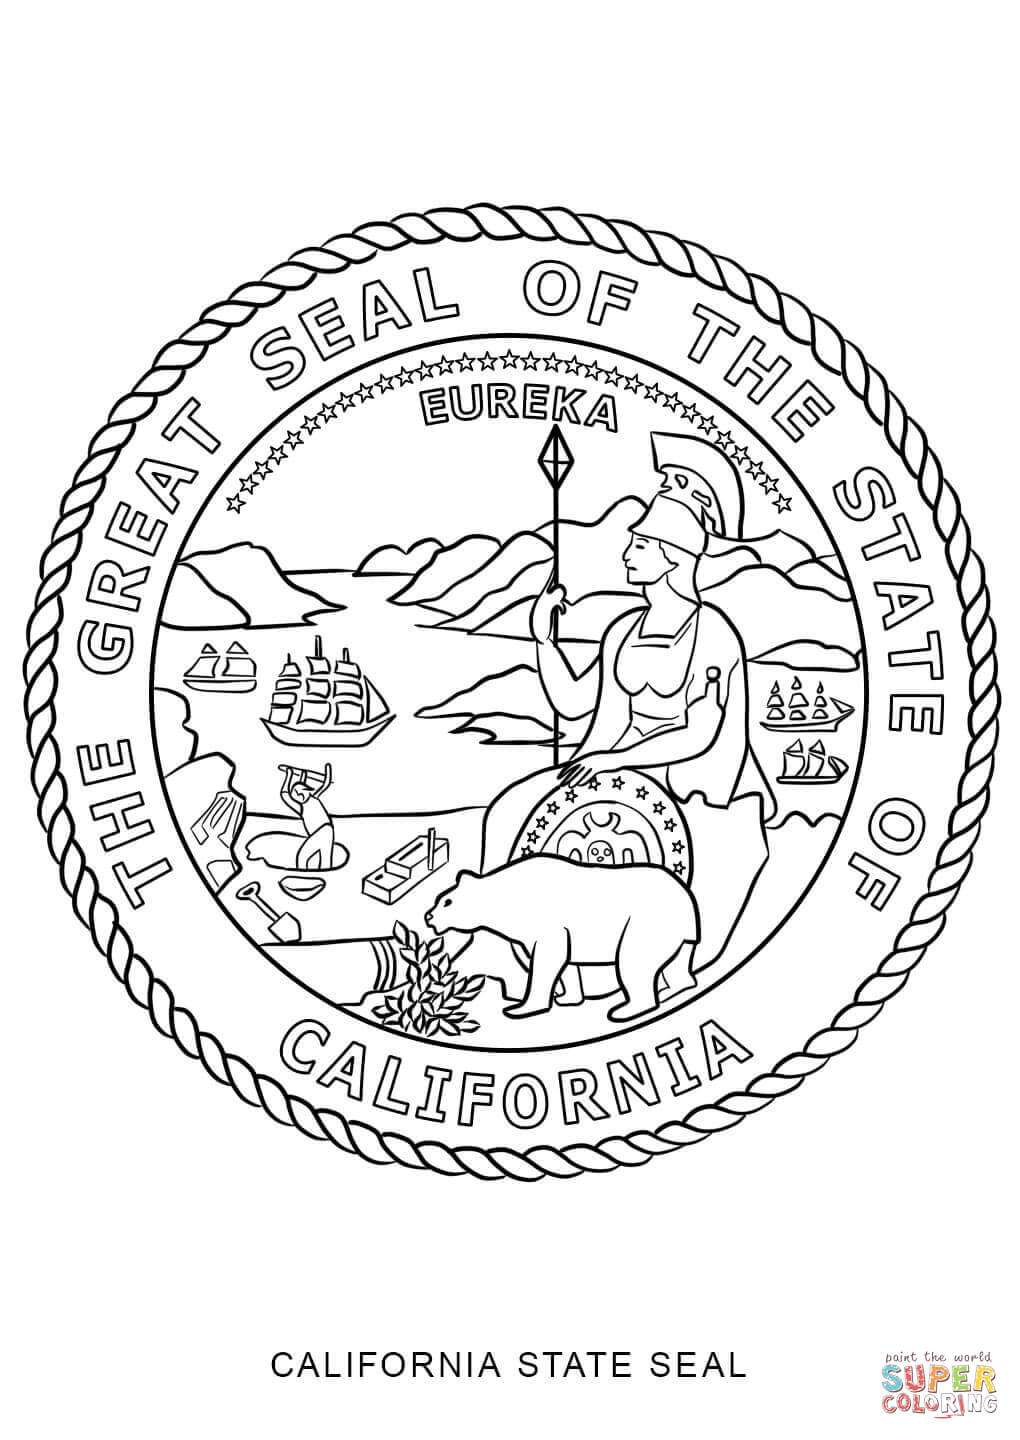 nc state seal coloring pages - photo#7